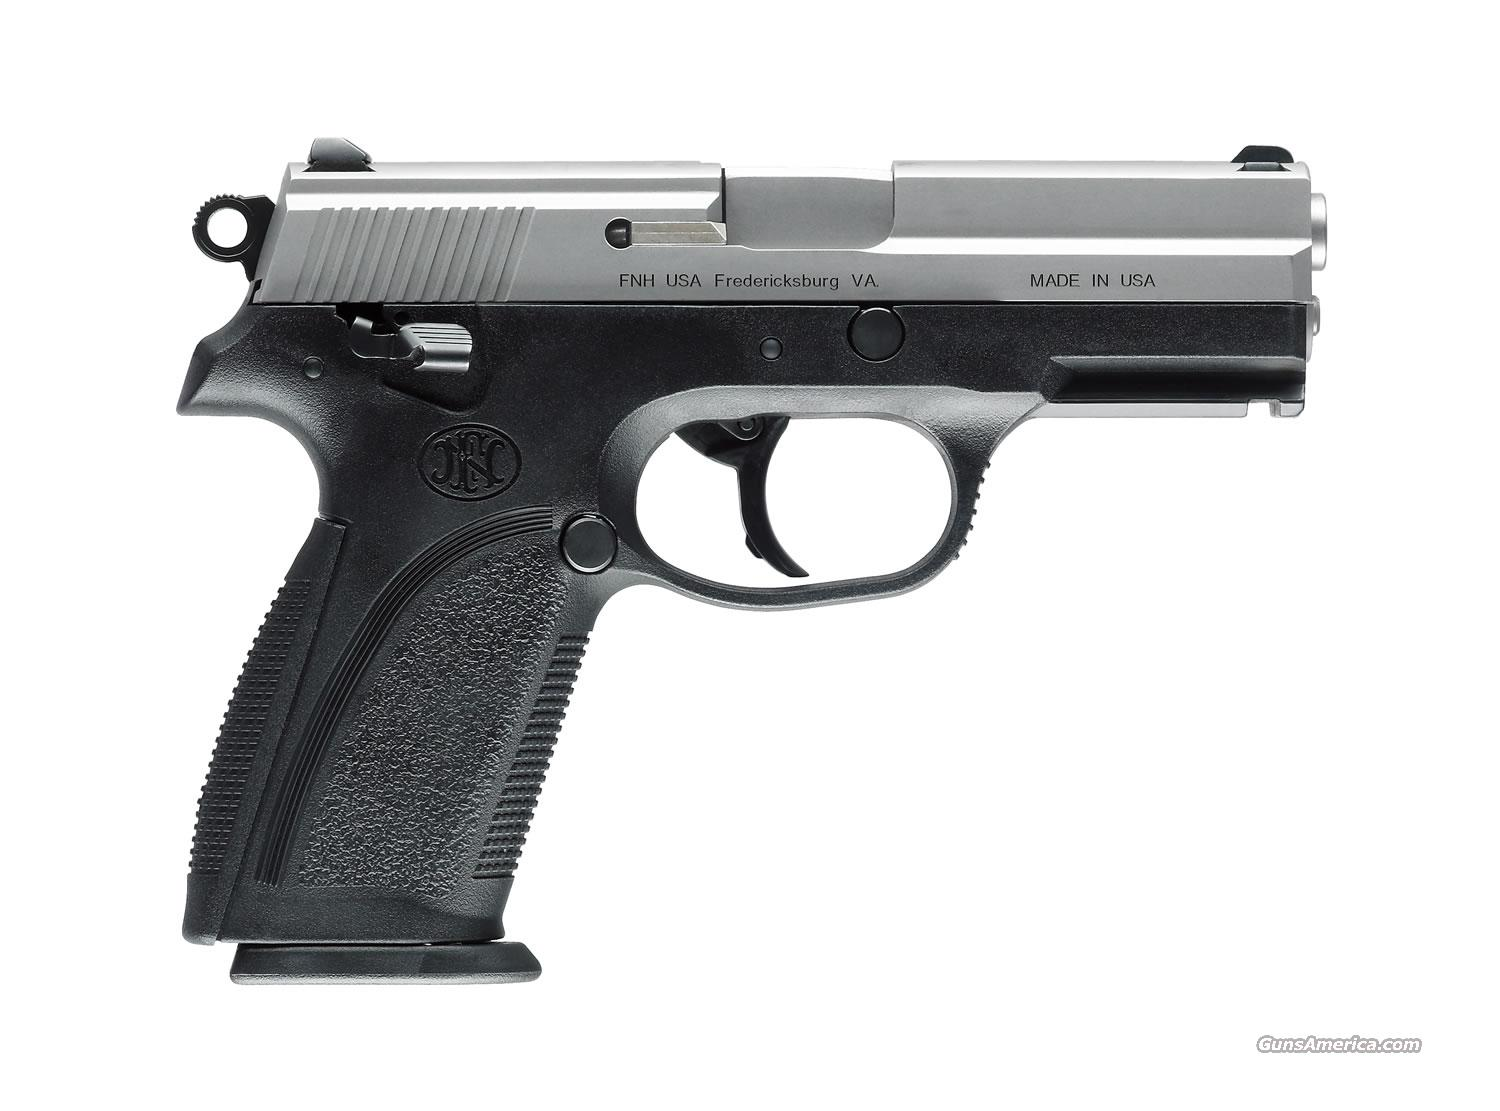 FN FNP-357 Silver Stainless 357 Sig NEW!  Guns > Pistols > FNH - Fabrique Nationale (FN) Pistols > FNP